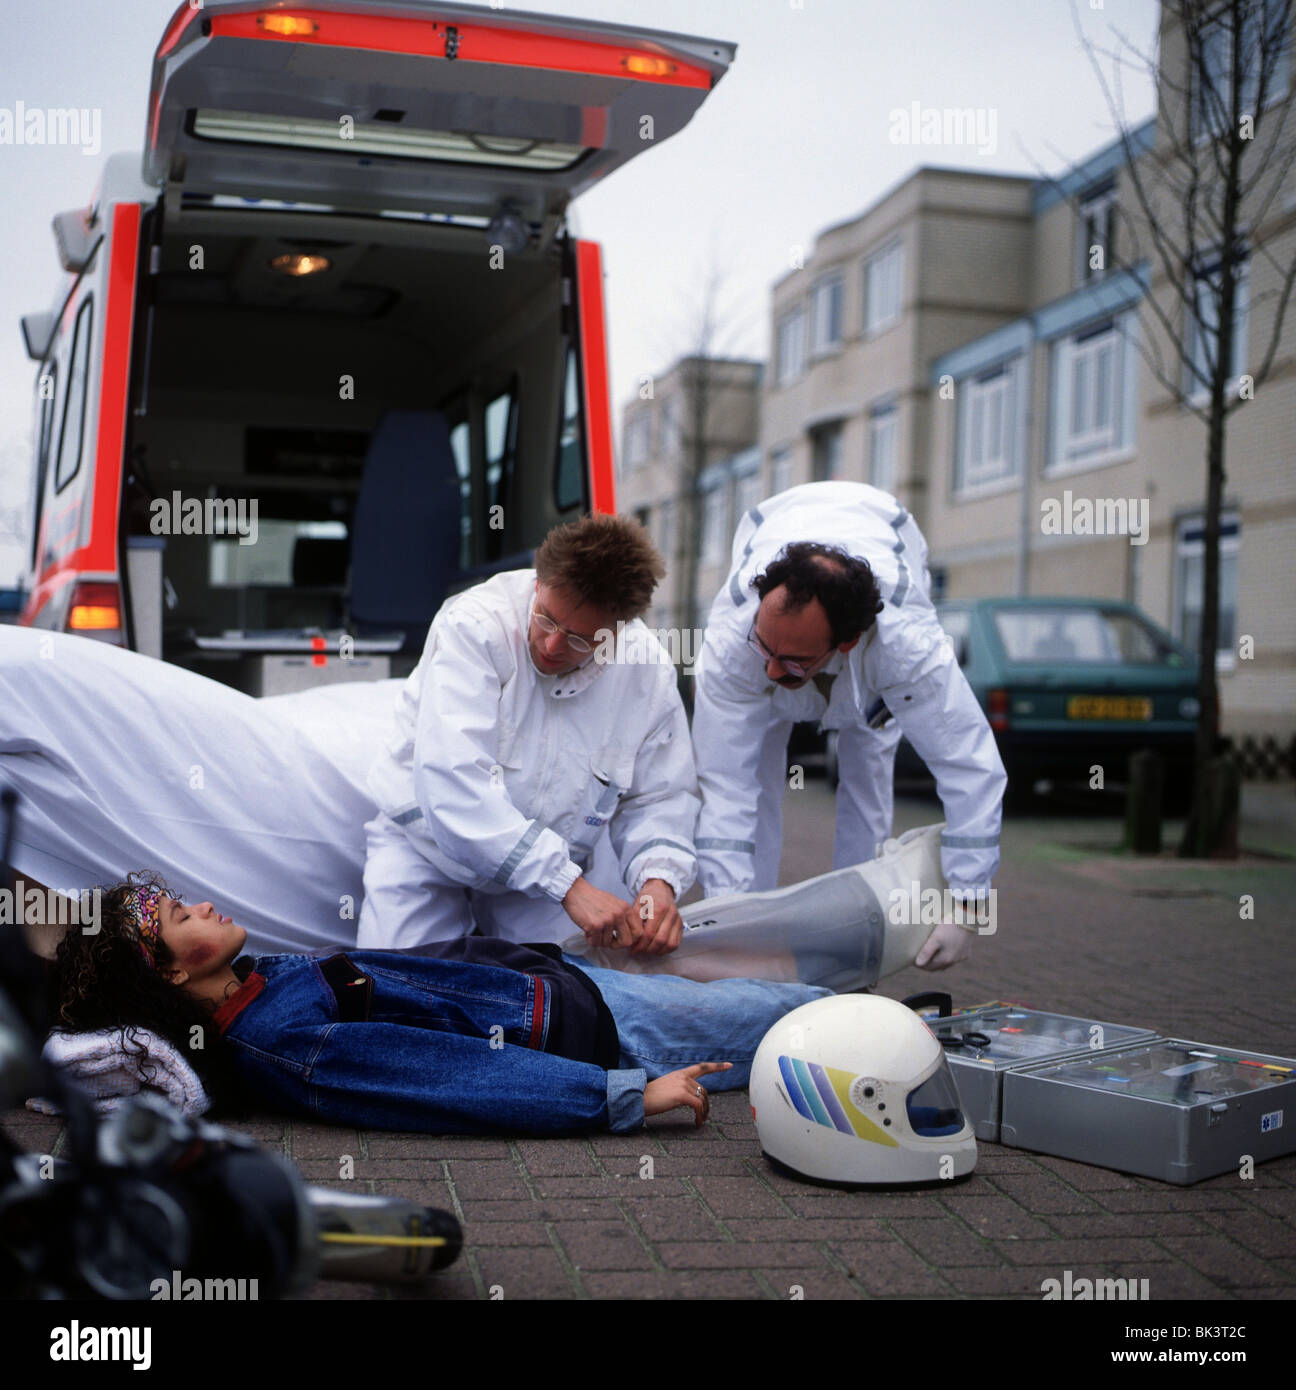 Ambulance and paramedics taking care of teenage girl after accident Stock Photo